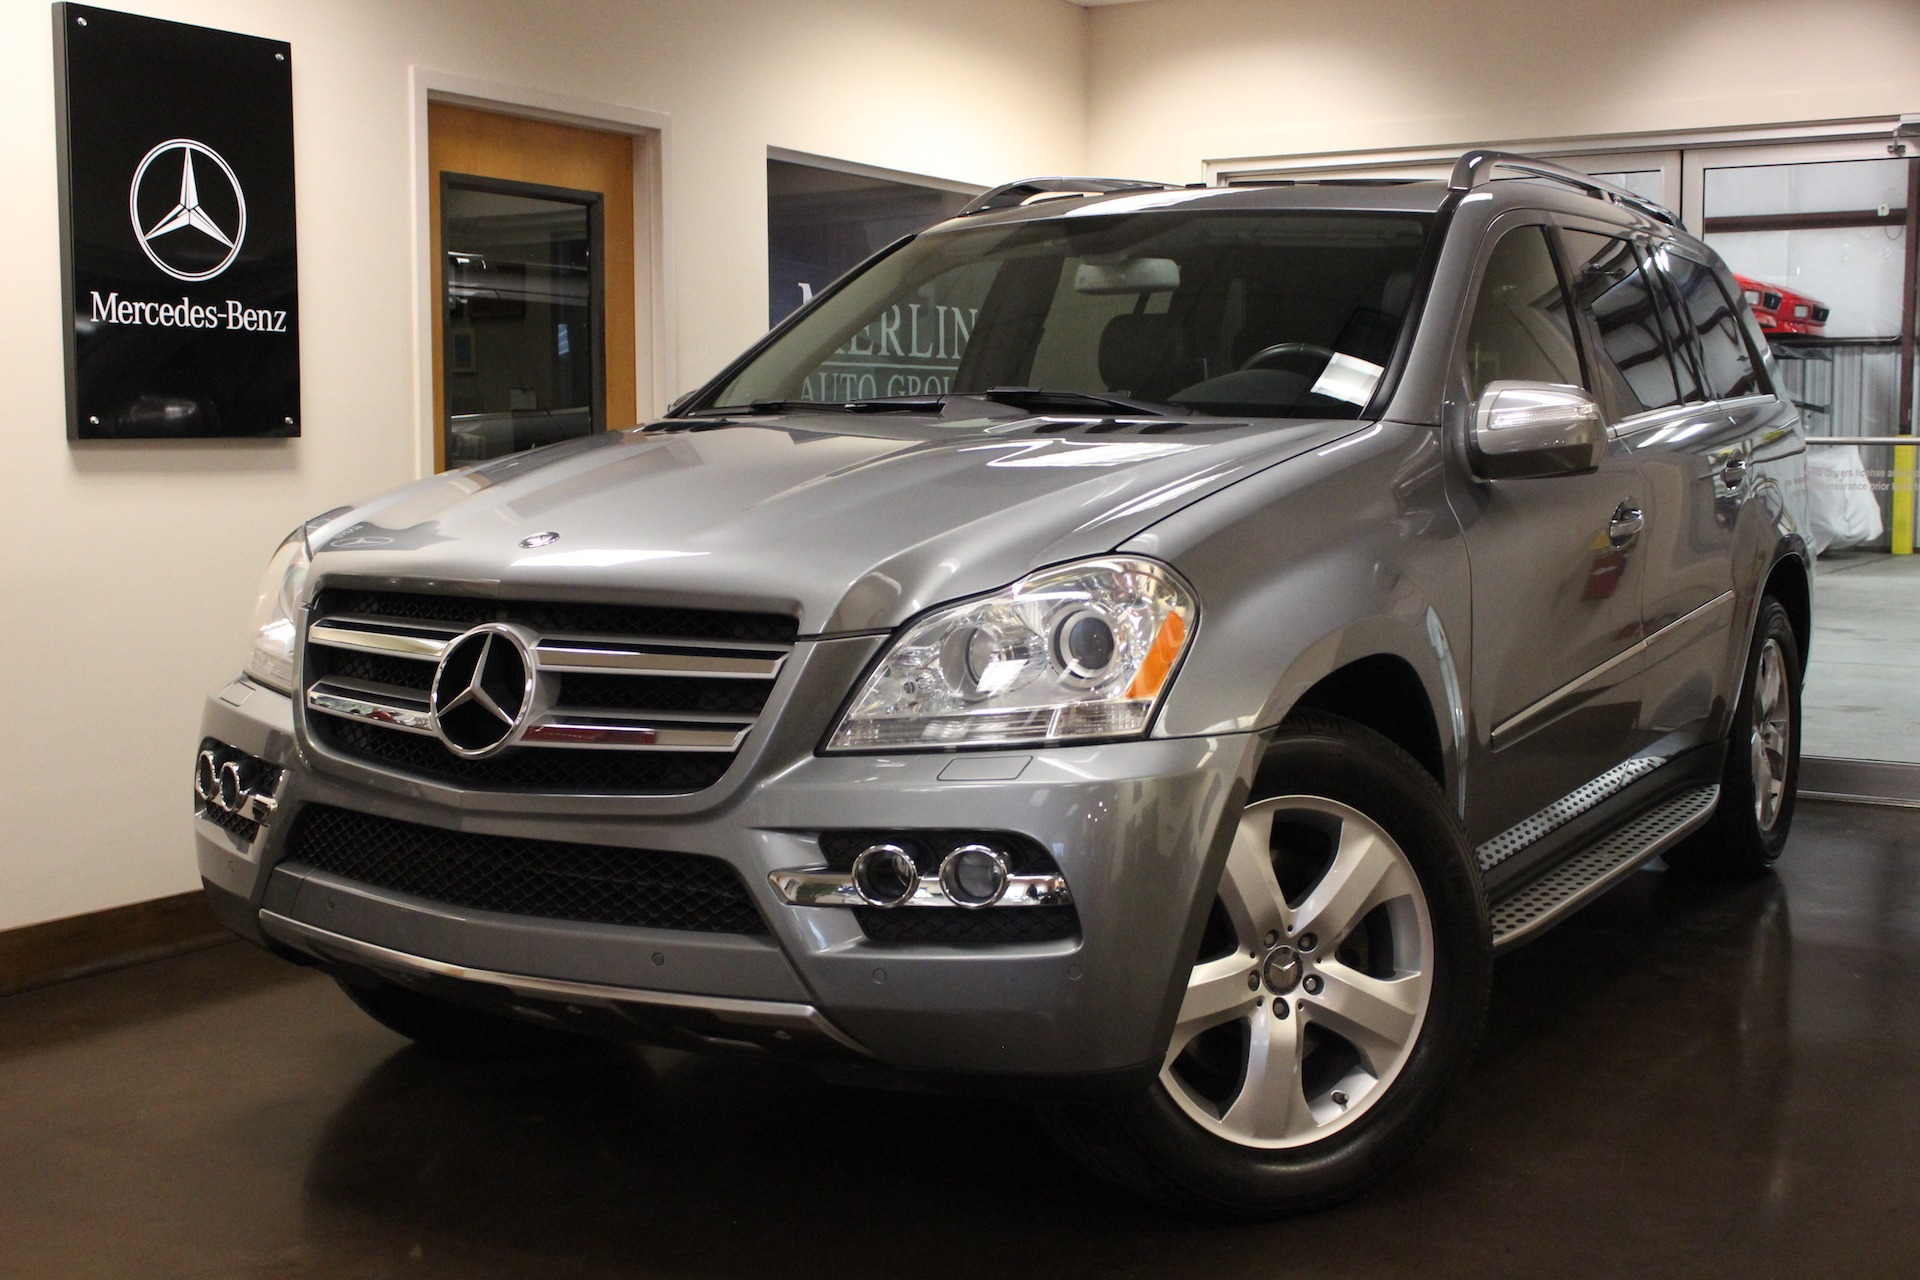 used 2010 mercedes benz gl class stock p4249 ultra. Black Bedroom Furniture Sets. Home Design Ideas